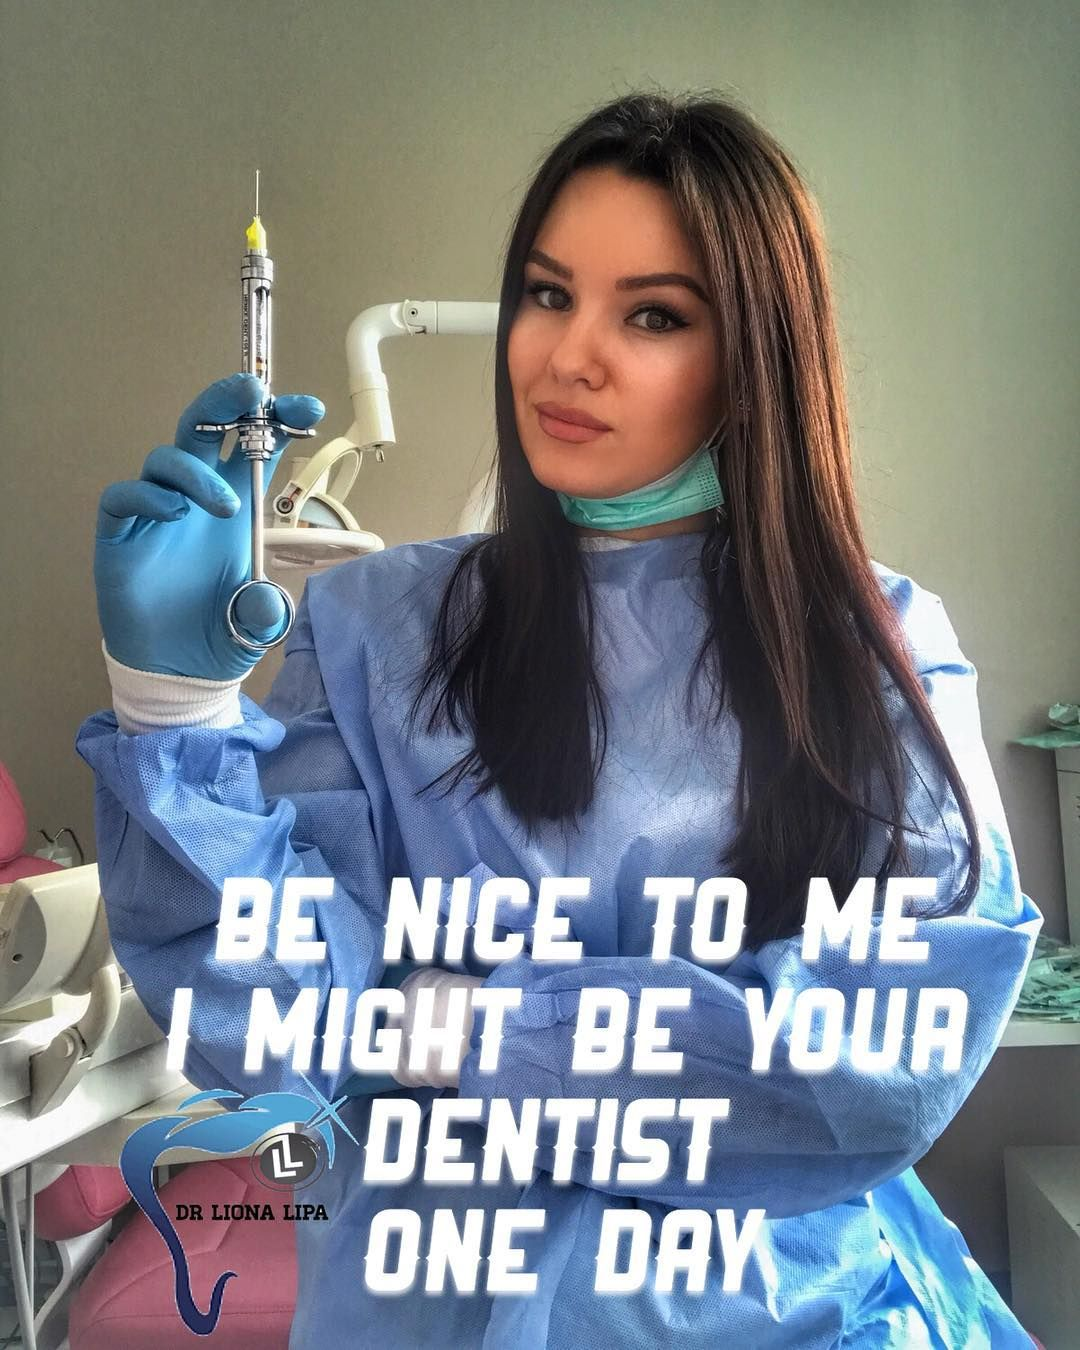 Pin By Mahya On My Saves Dental Assistant Dentist Doctor Dentist